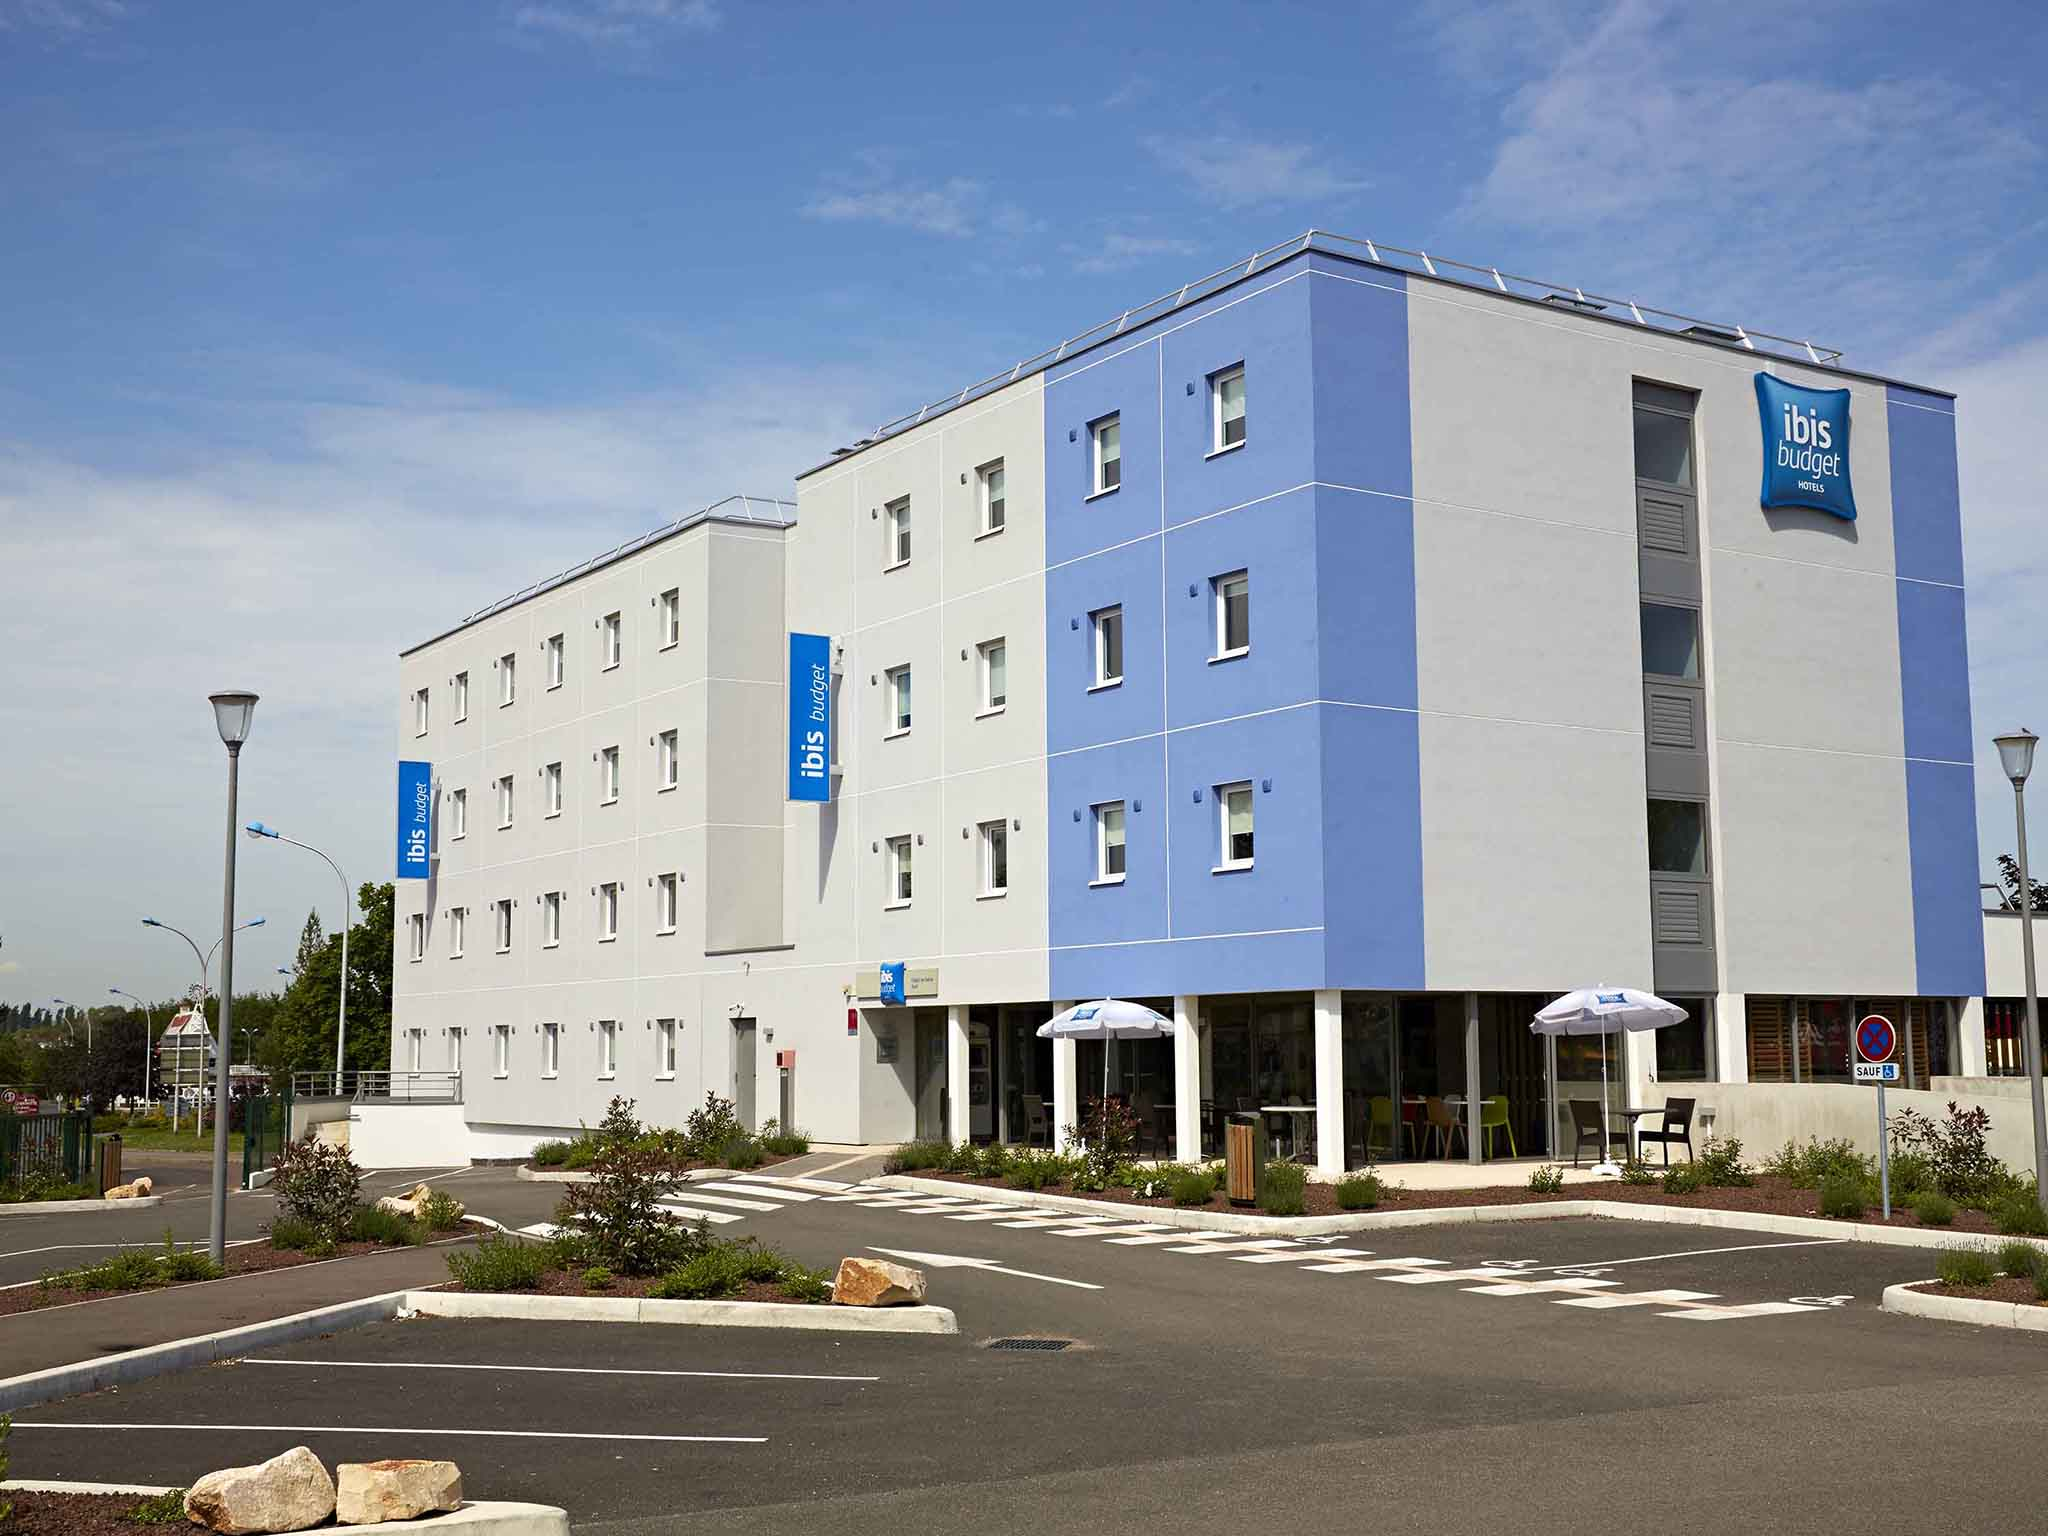 Hotel in chalon sur saone ibis budget chalon sur saone nord for Hotels ibis france